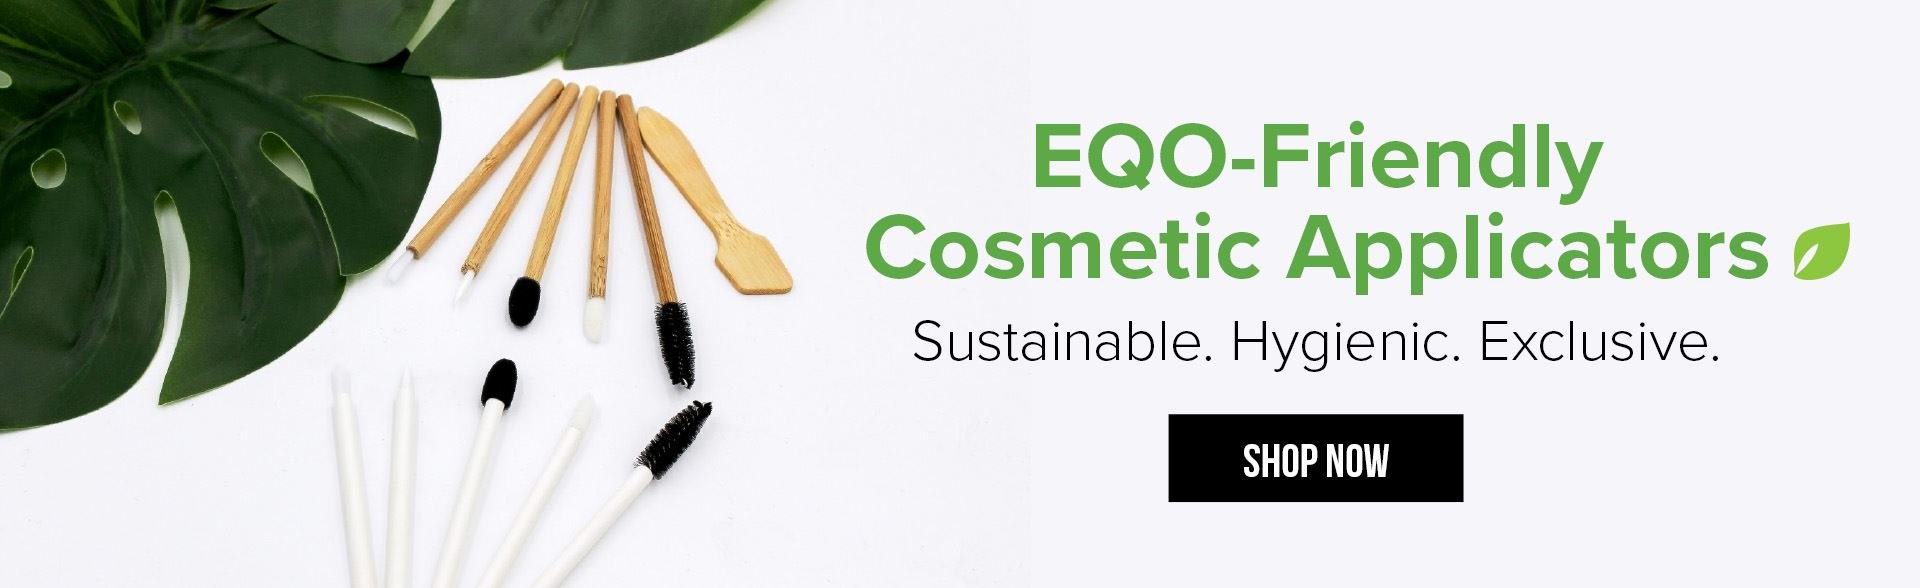 EQO-Friendly Cosmetic Applicators - Sustainable - Hygienic - Exclusive - Shop Now